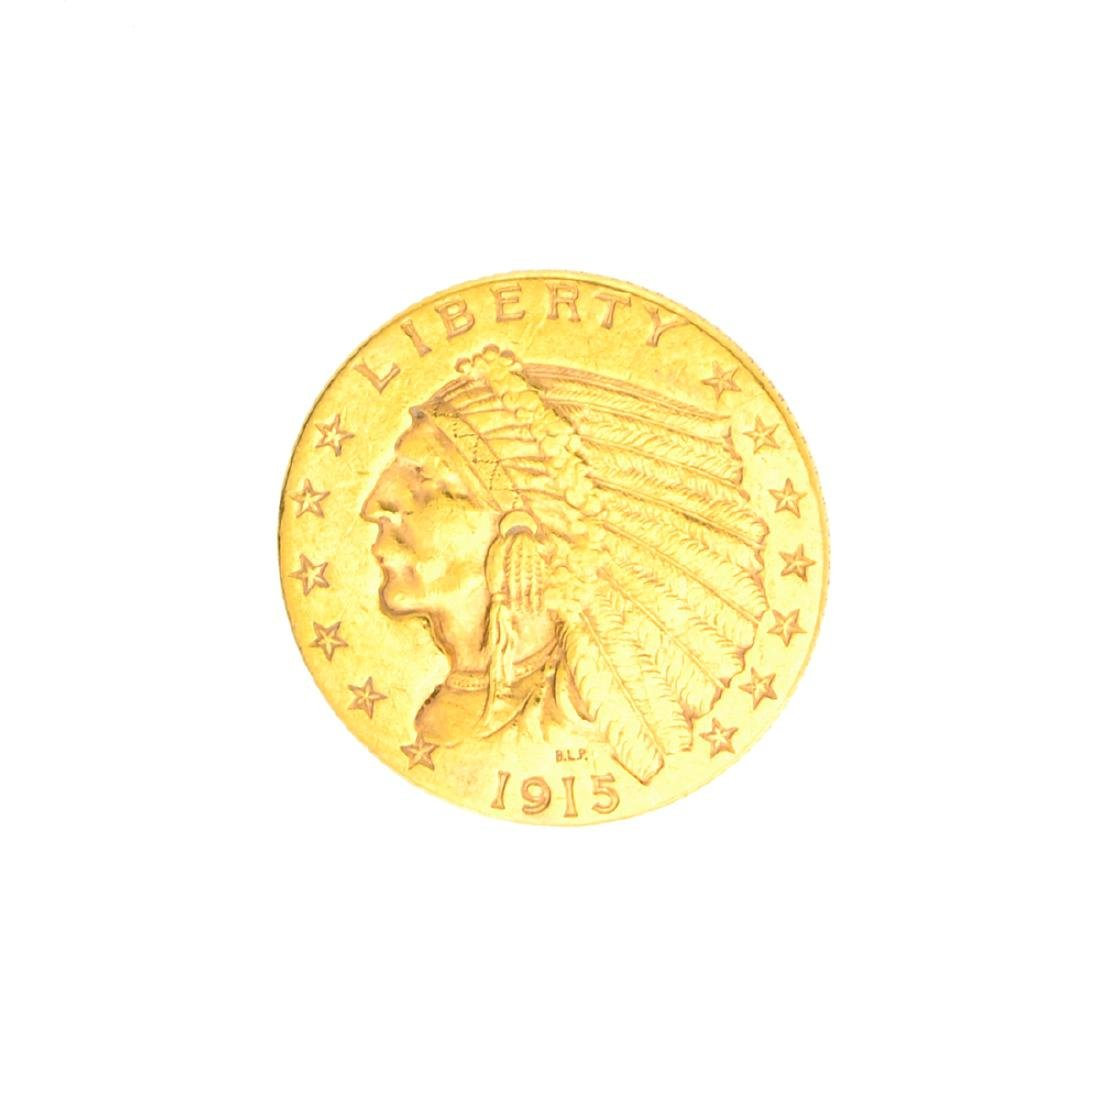 Very Rare 1915 $2.50 U.S. Indian Head Gold Coin Great